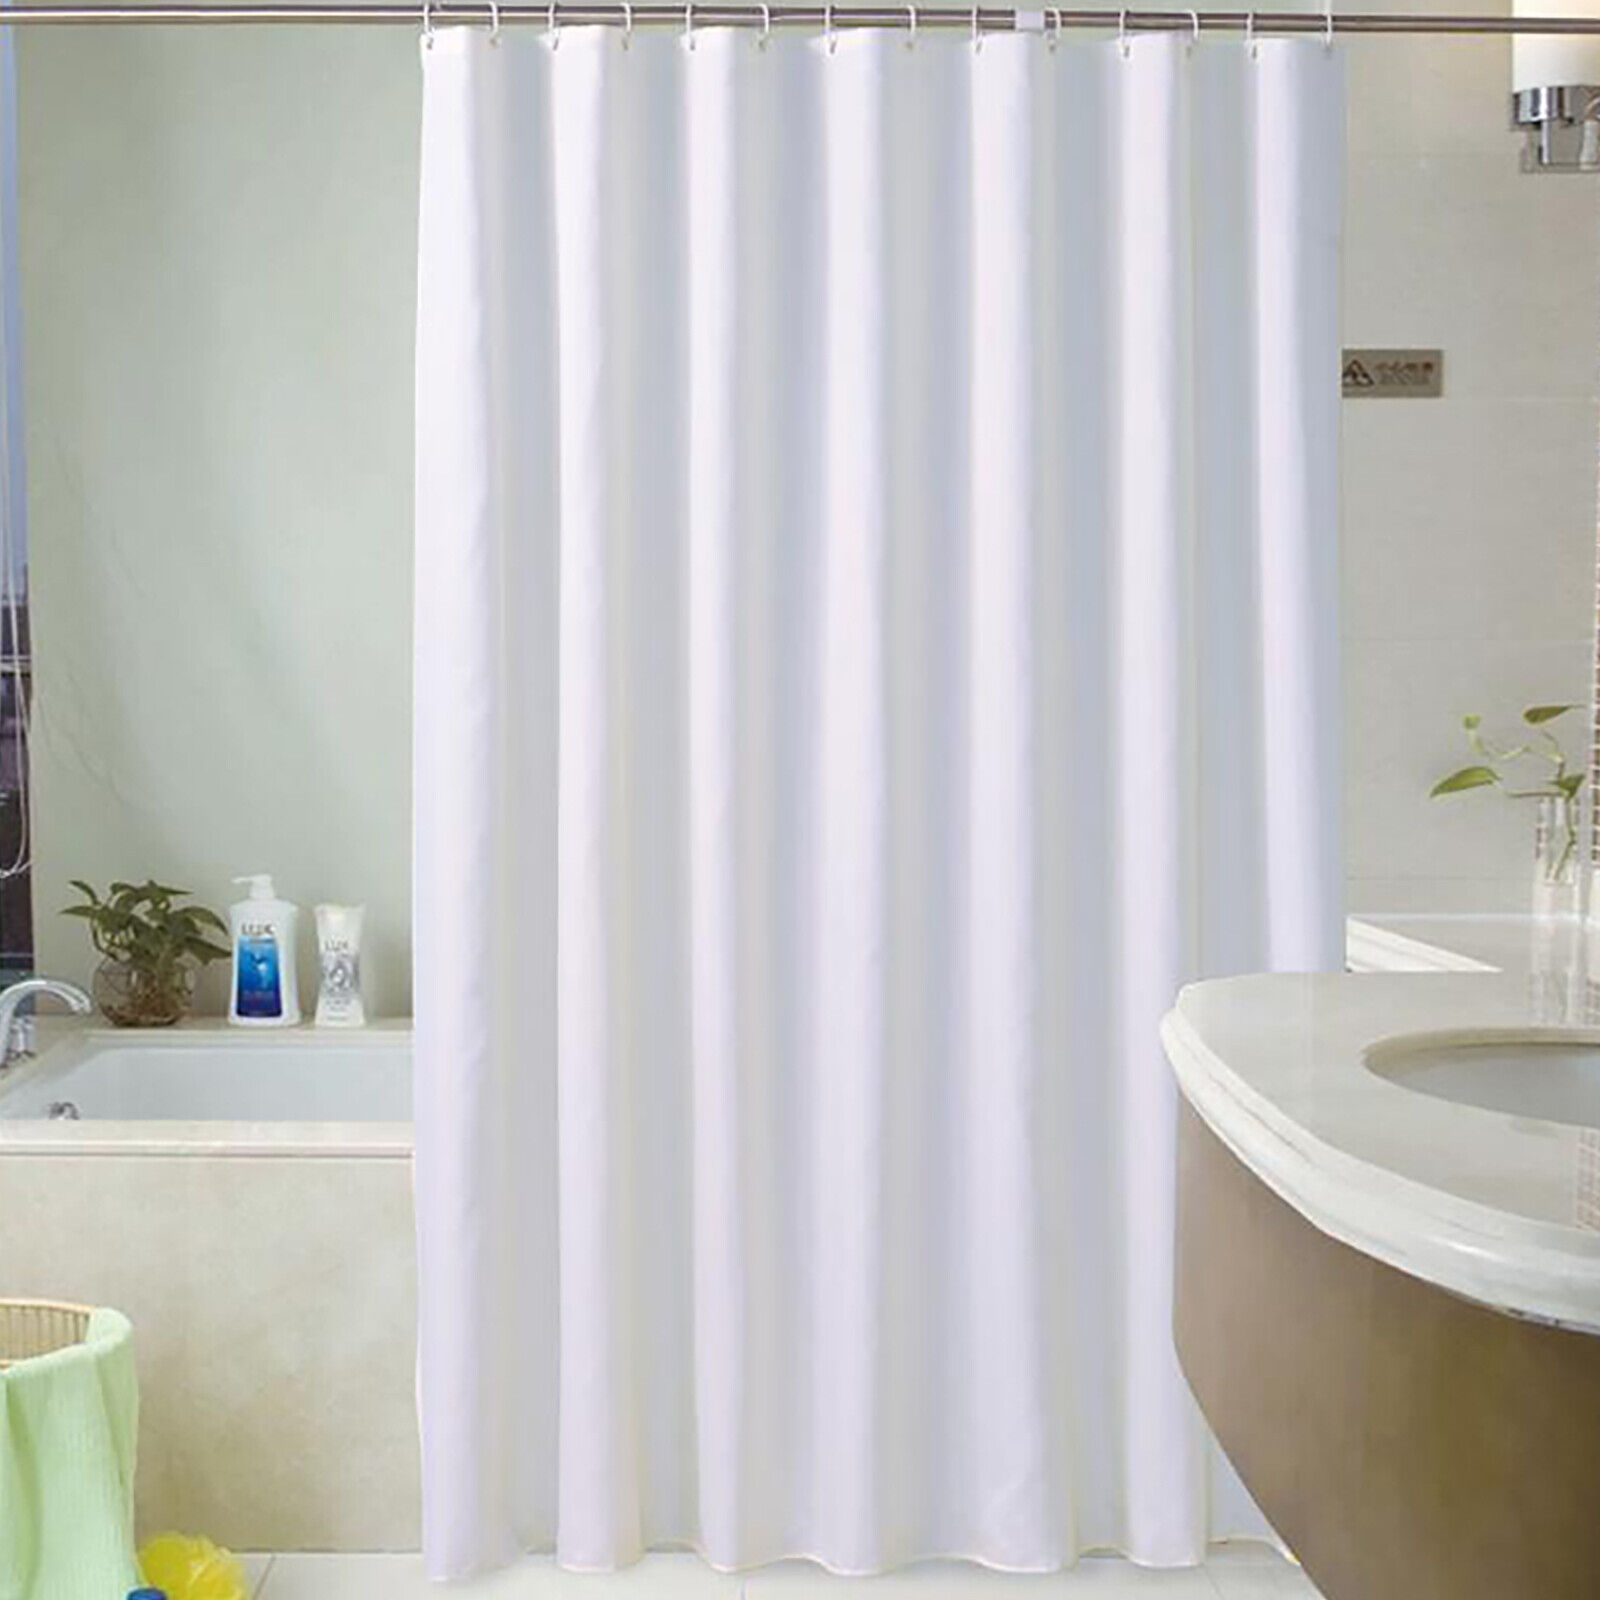 Waterproof Fabric Shower Curtain Bathroom Plain Home Hotel Decor With Ring Hook